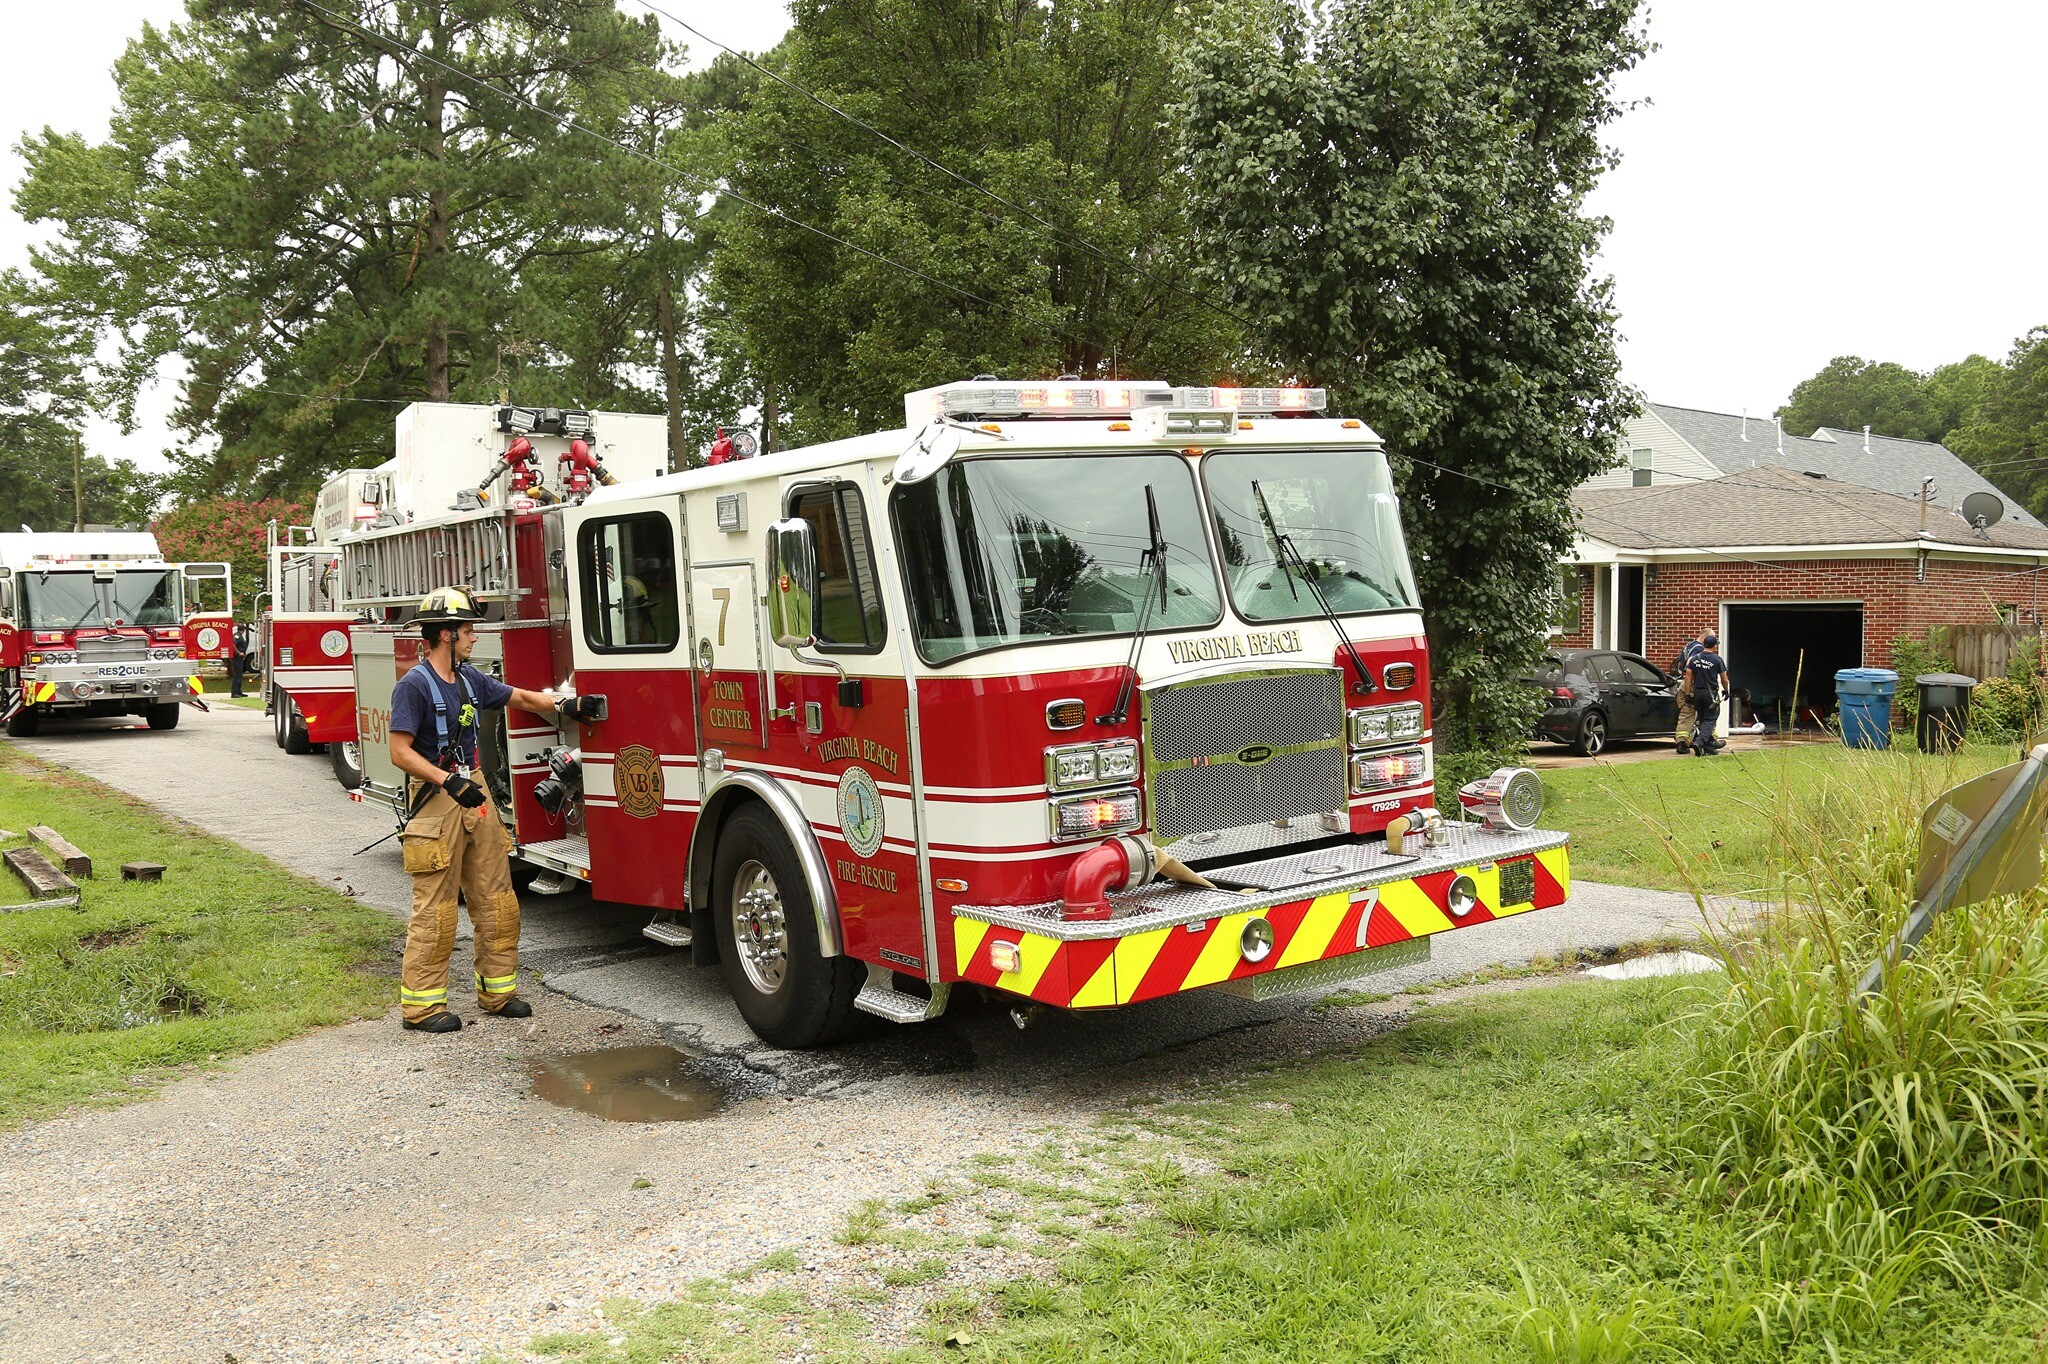 Photos: Officials investigating after house fire in VirginiaBeach